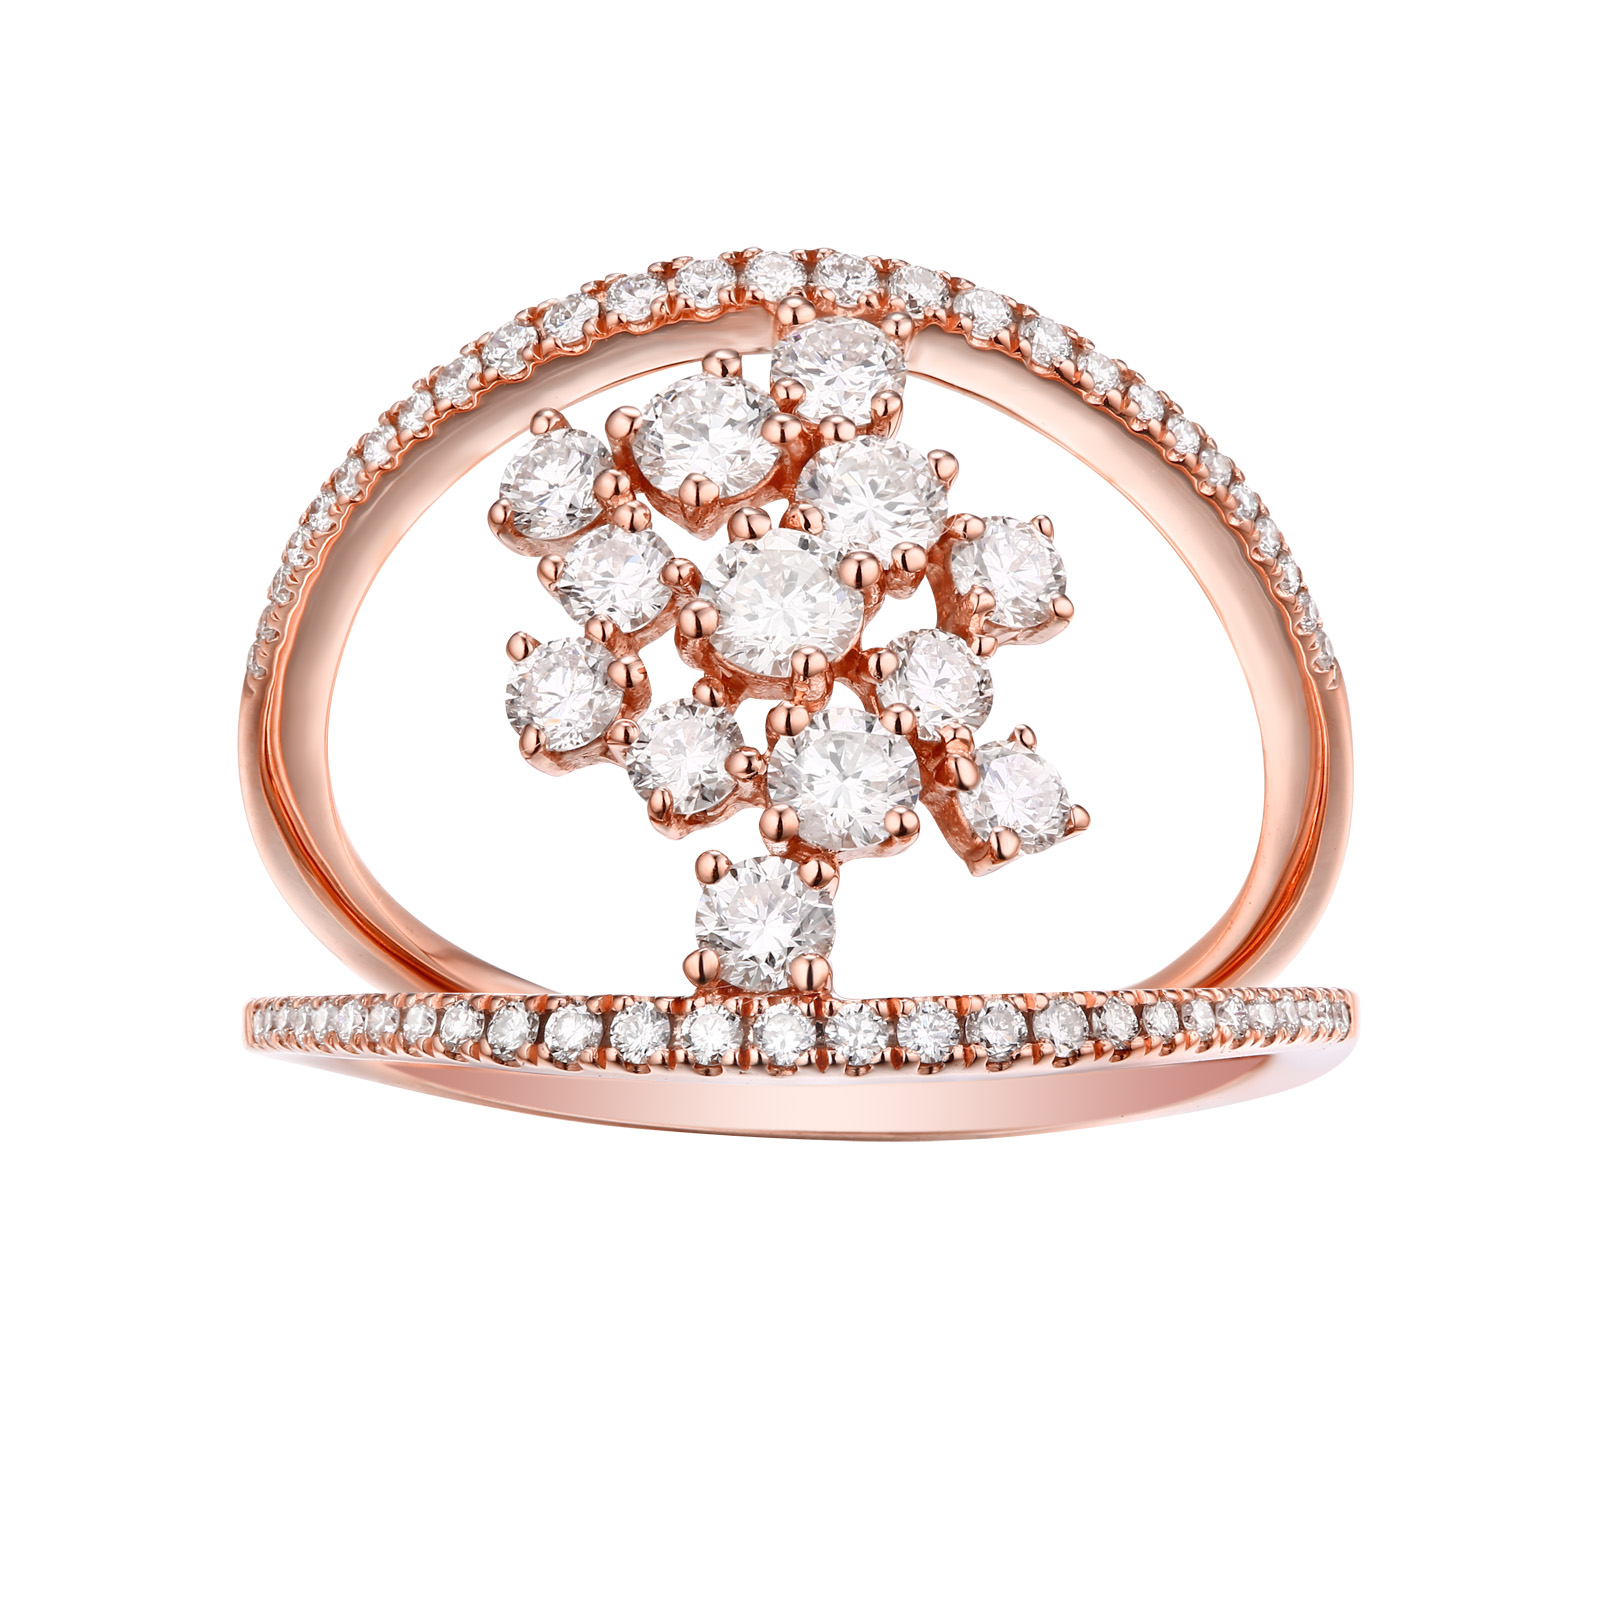 R25731WHT- 14K Rose Gold Diamond Ring, 0.89 TCW